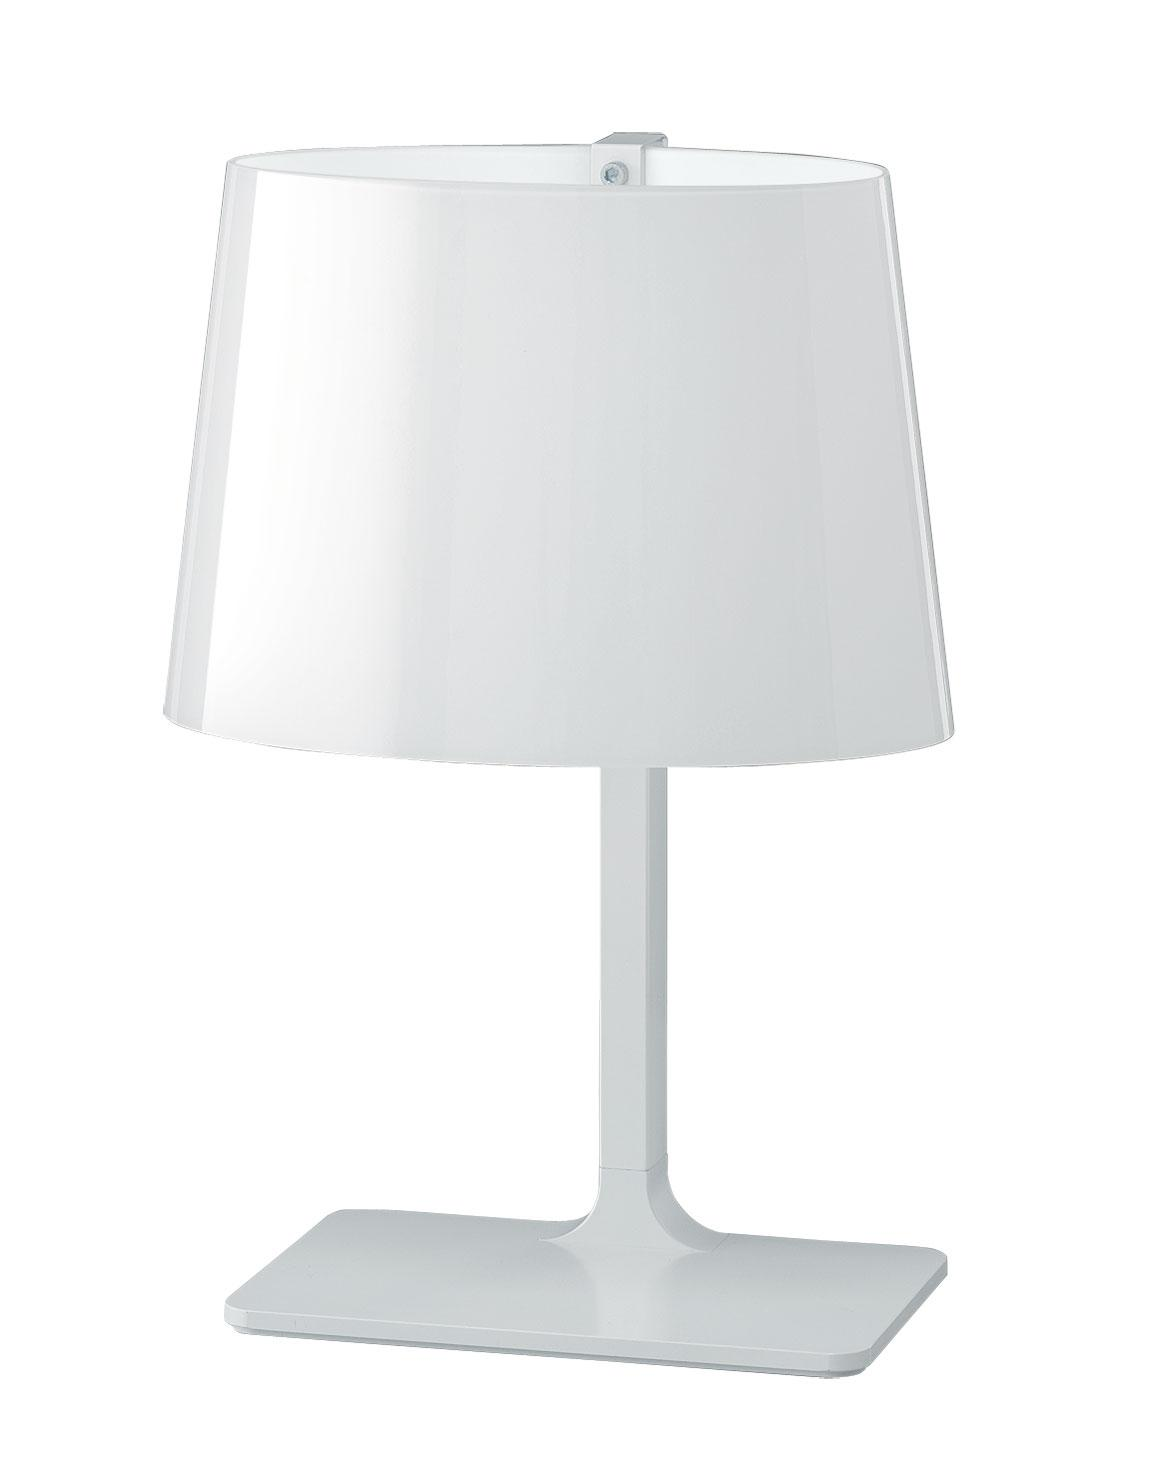 Table Lamp Murano Glass White Design Post Dimmer Post Made In Italy Light  Online Quality Price